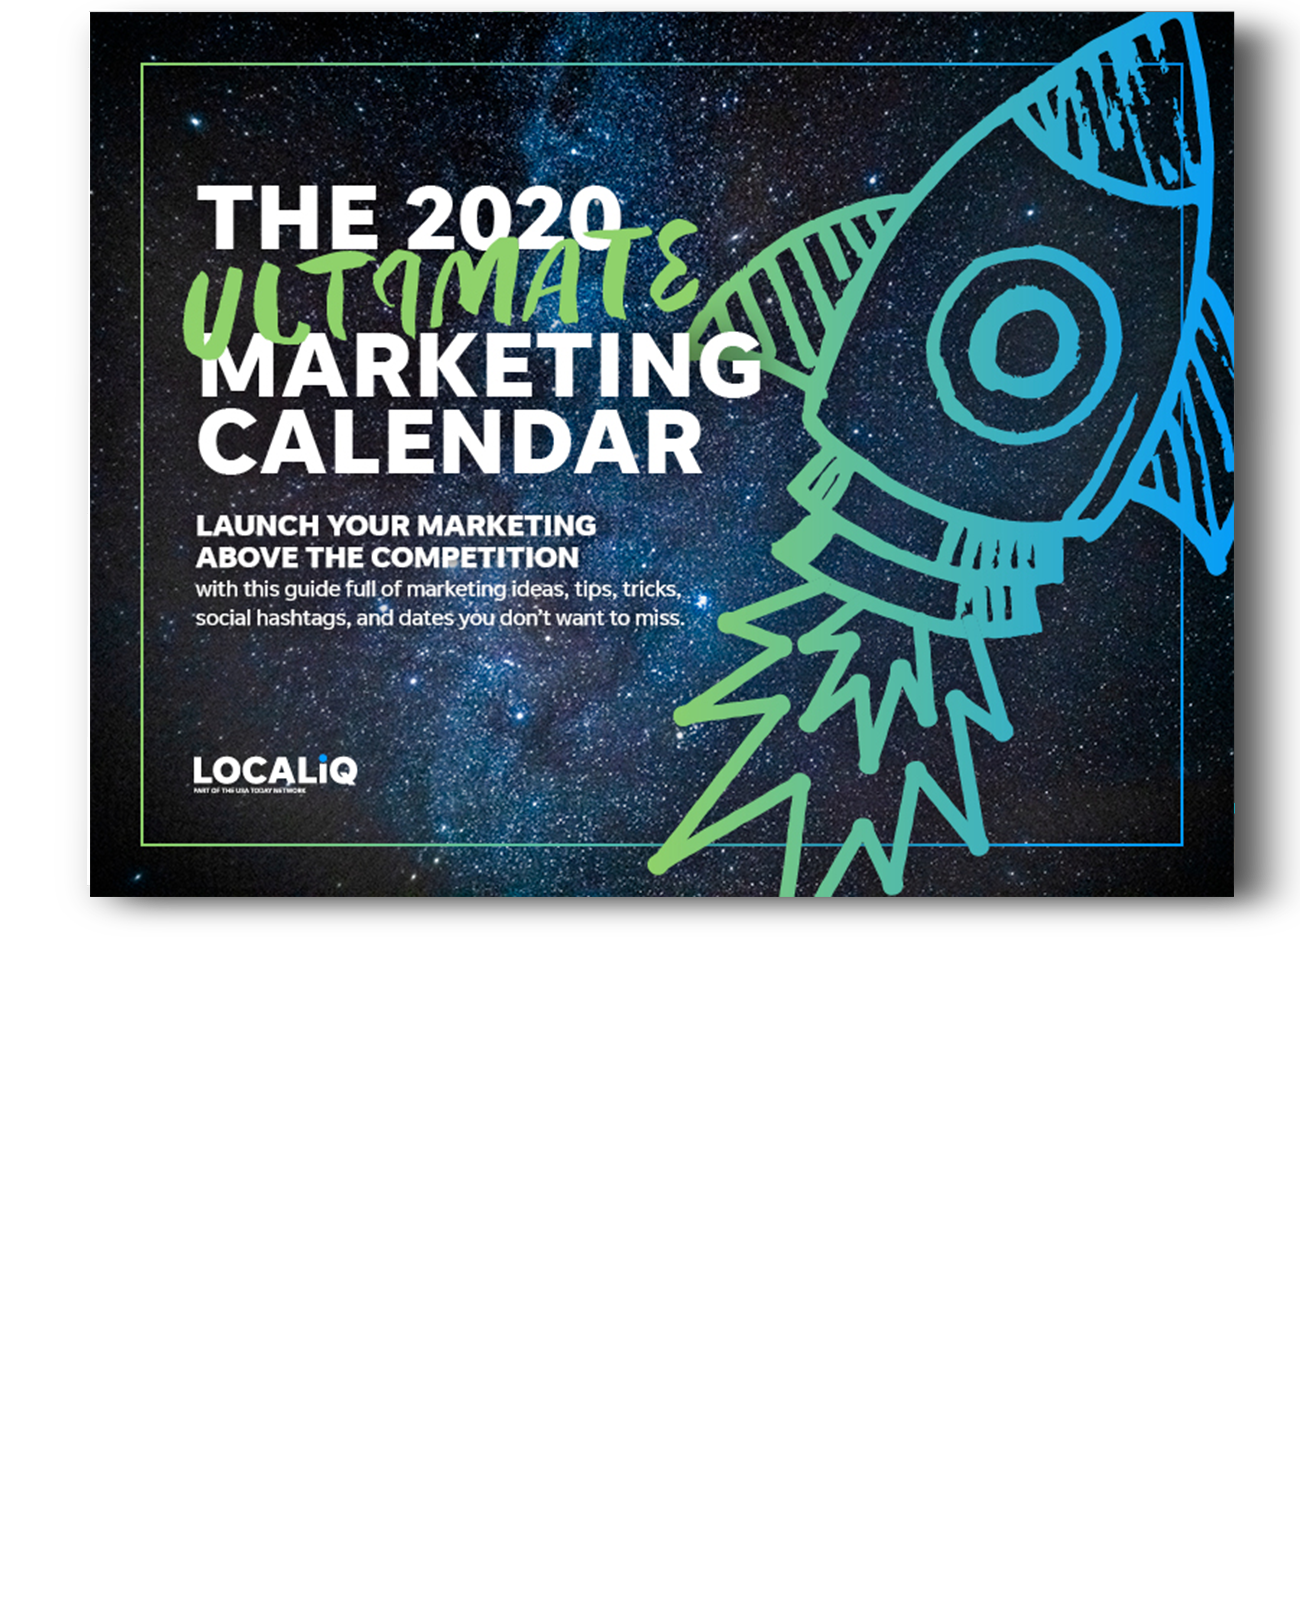 The 2020 Ultimate Marketing Calendar